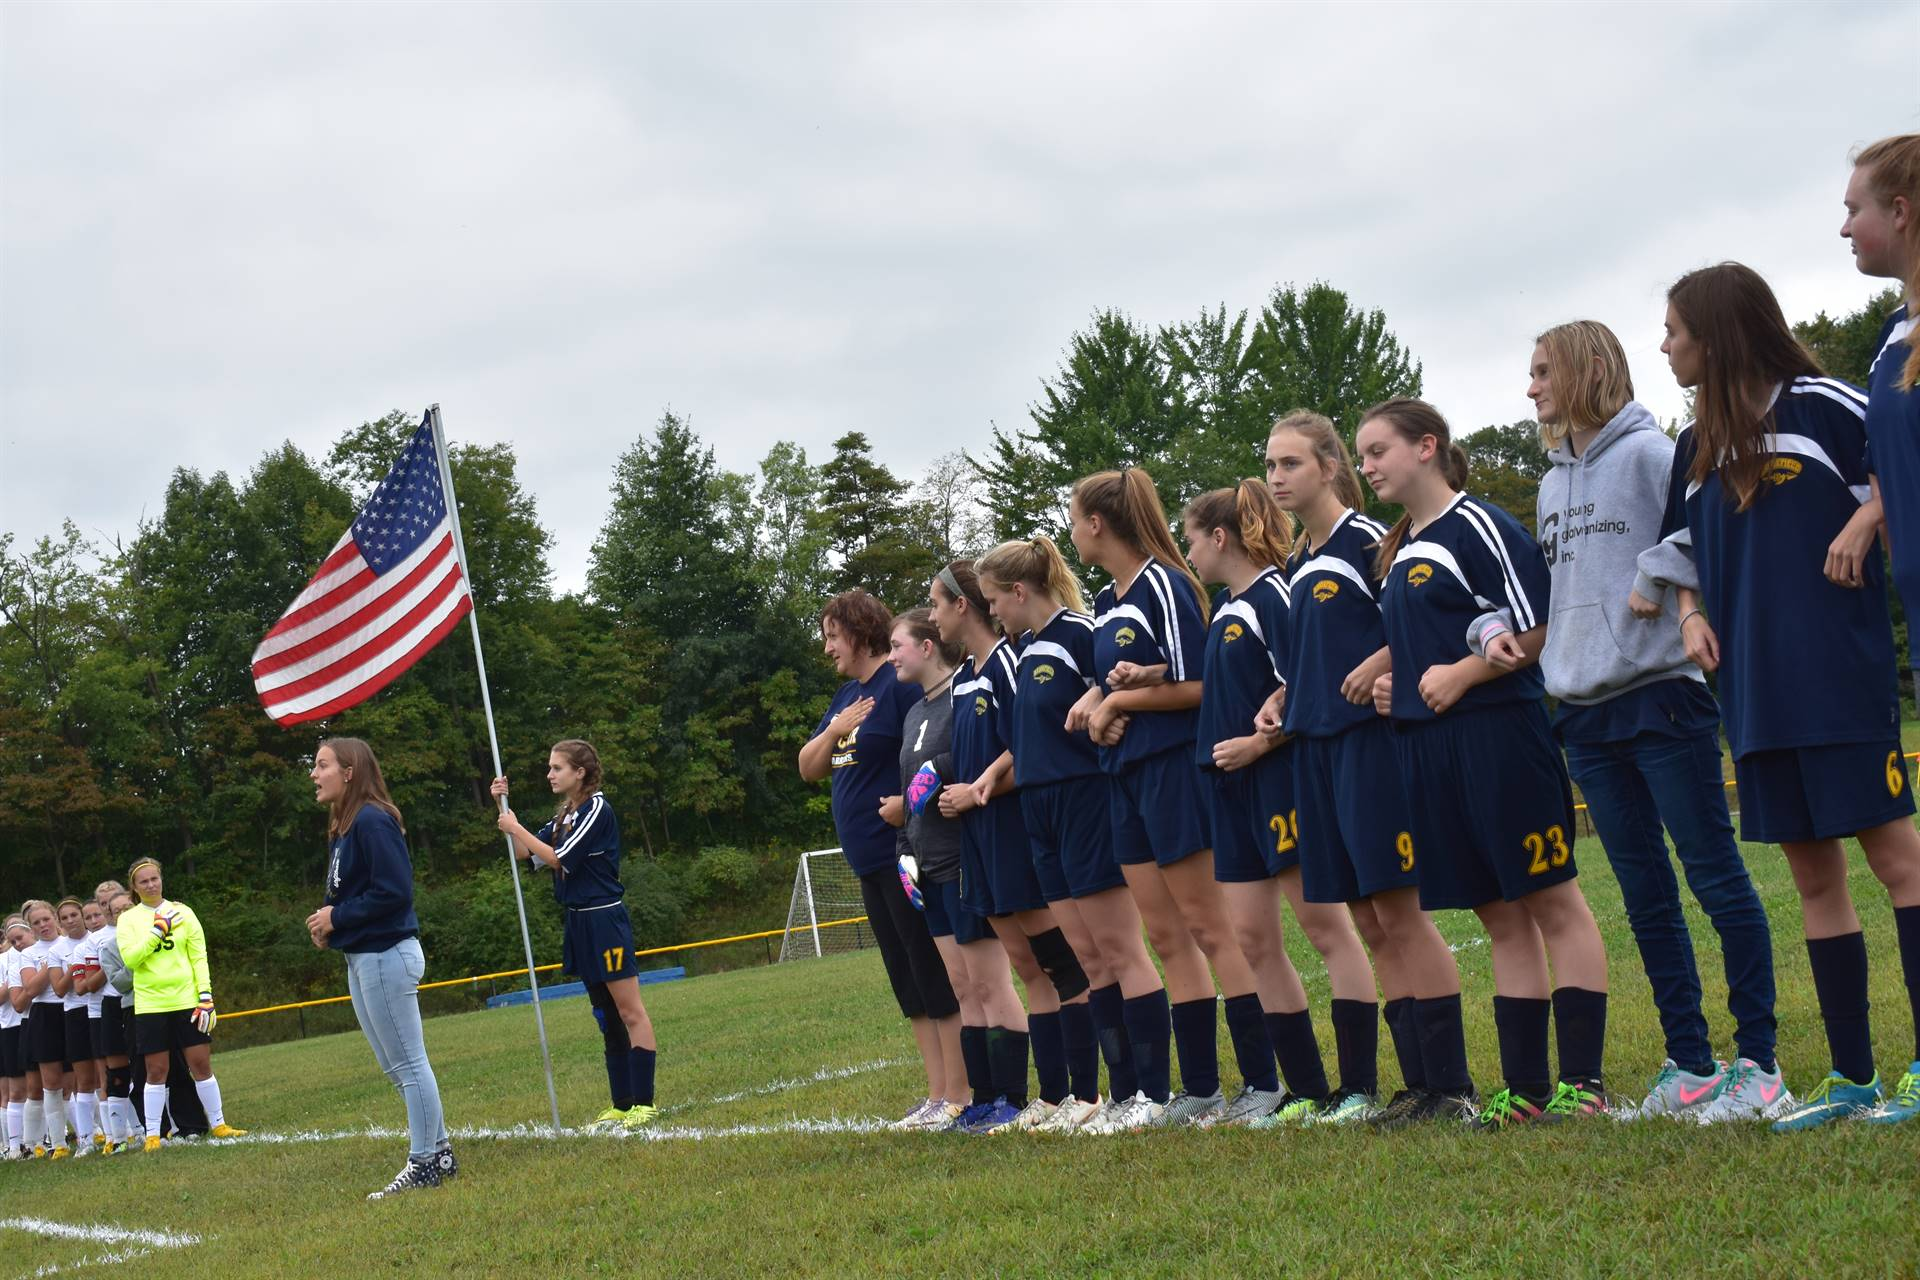 The varsity soccer team lines up prior to the game